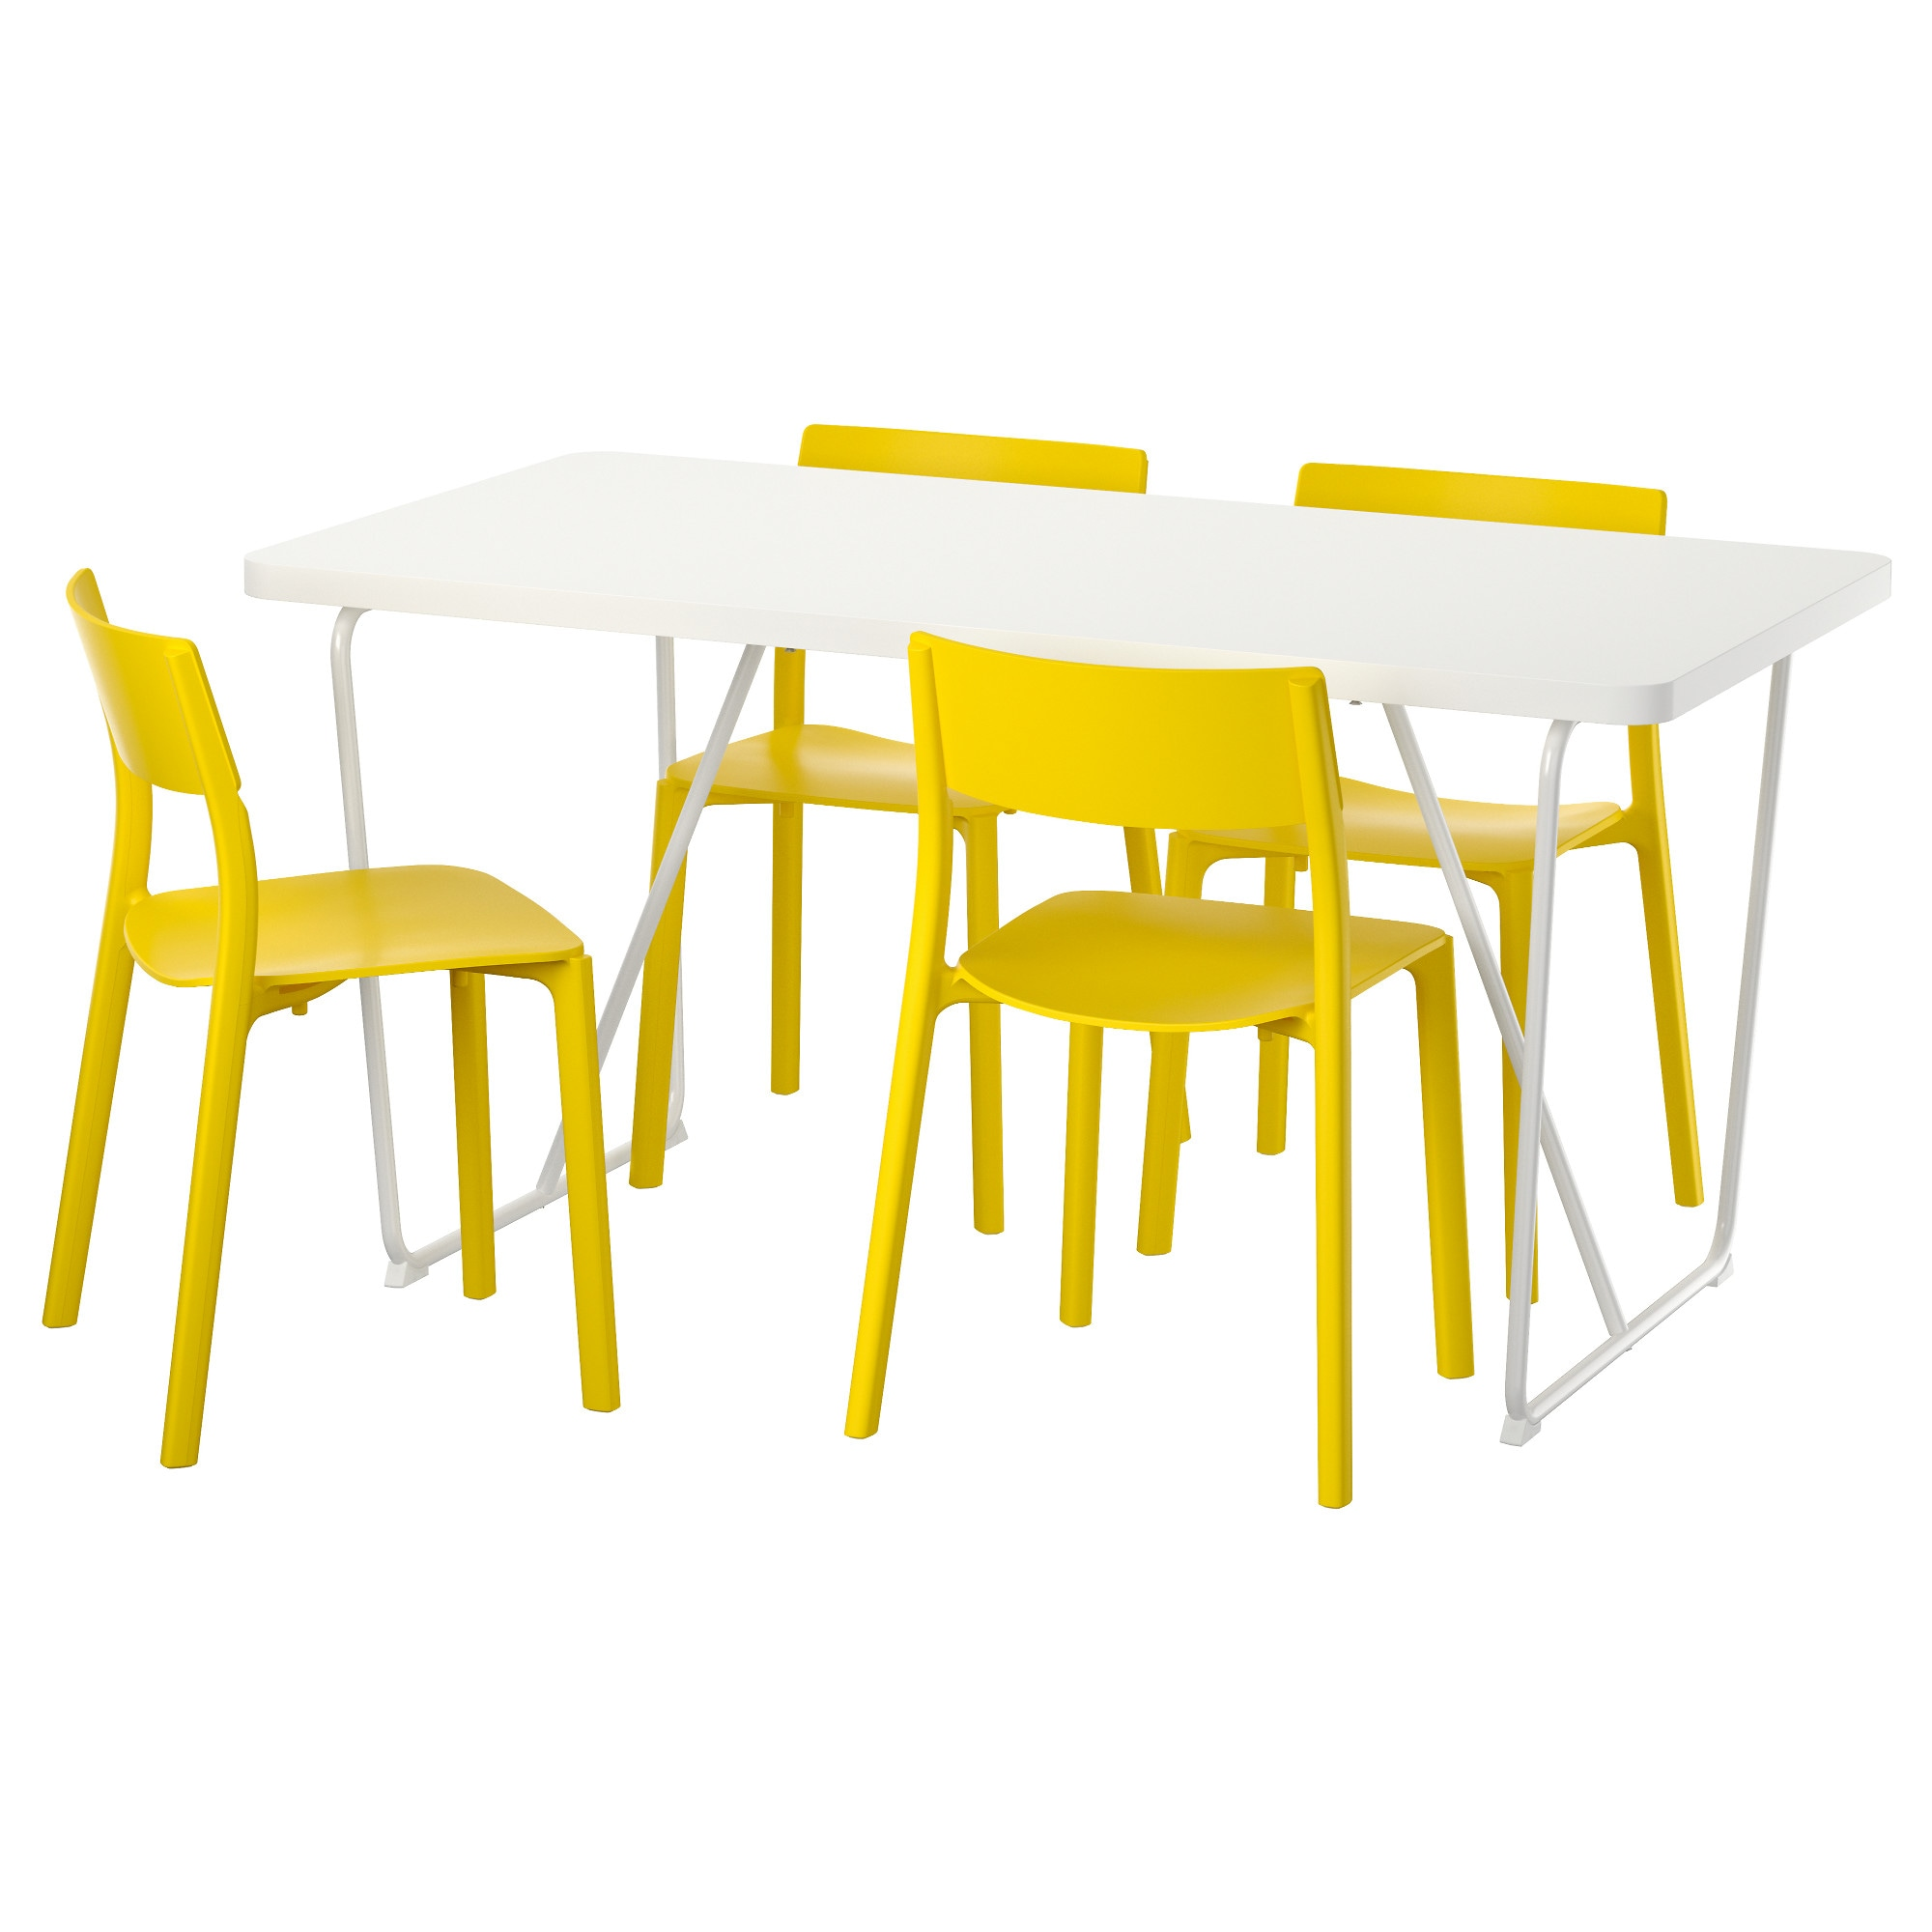 RYDEBCK BACKARYD JANINGE Table And 4 Chairs